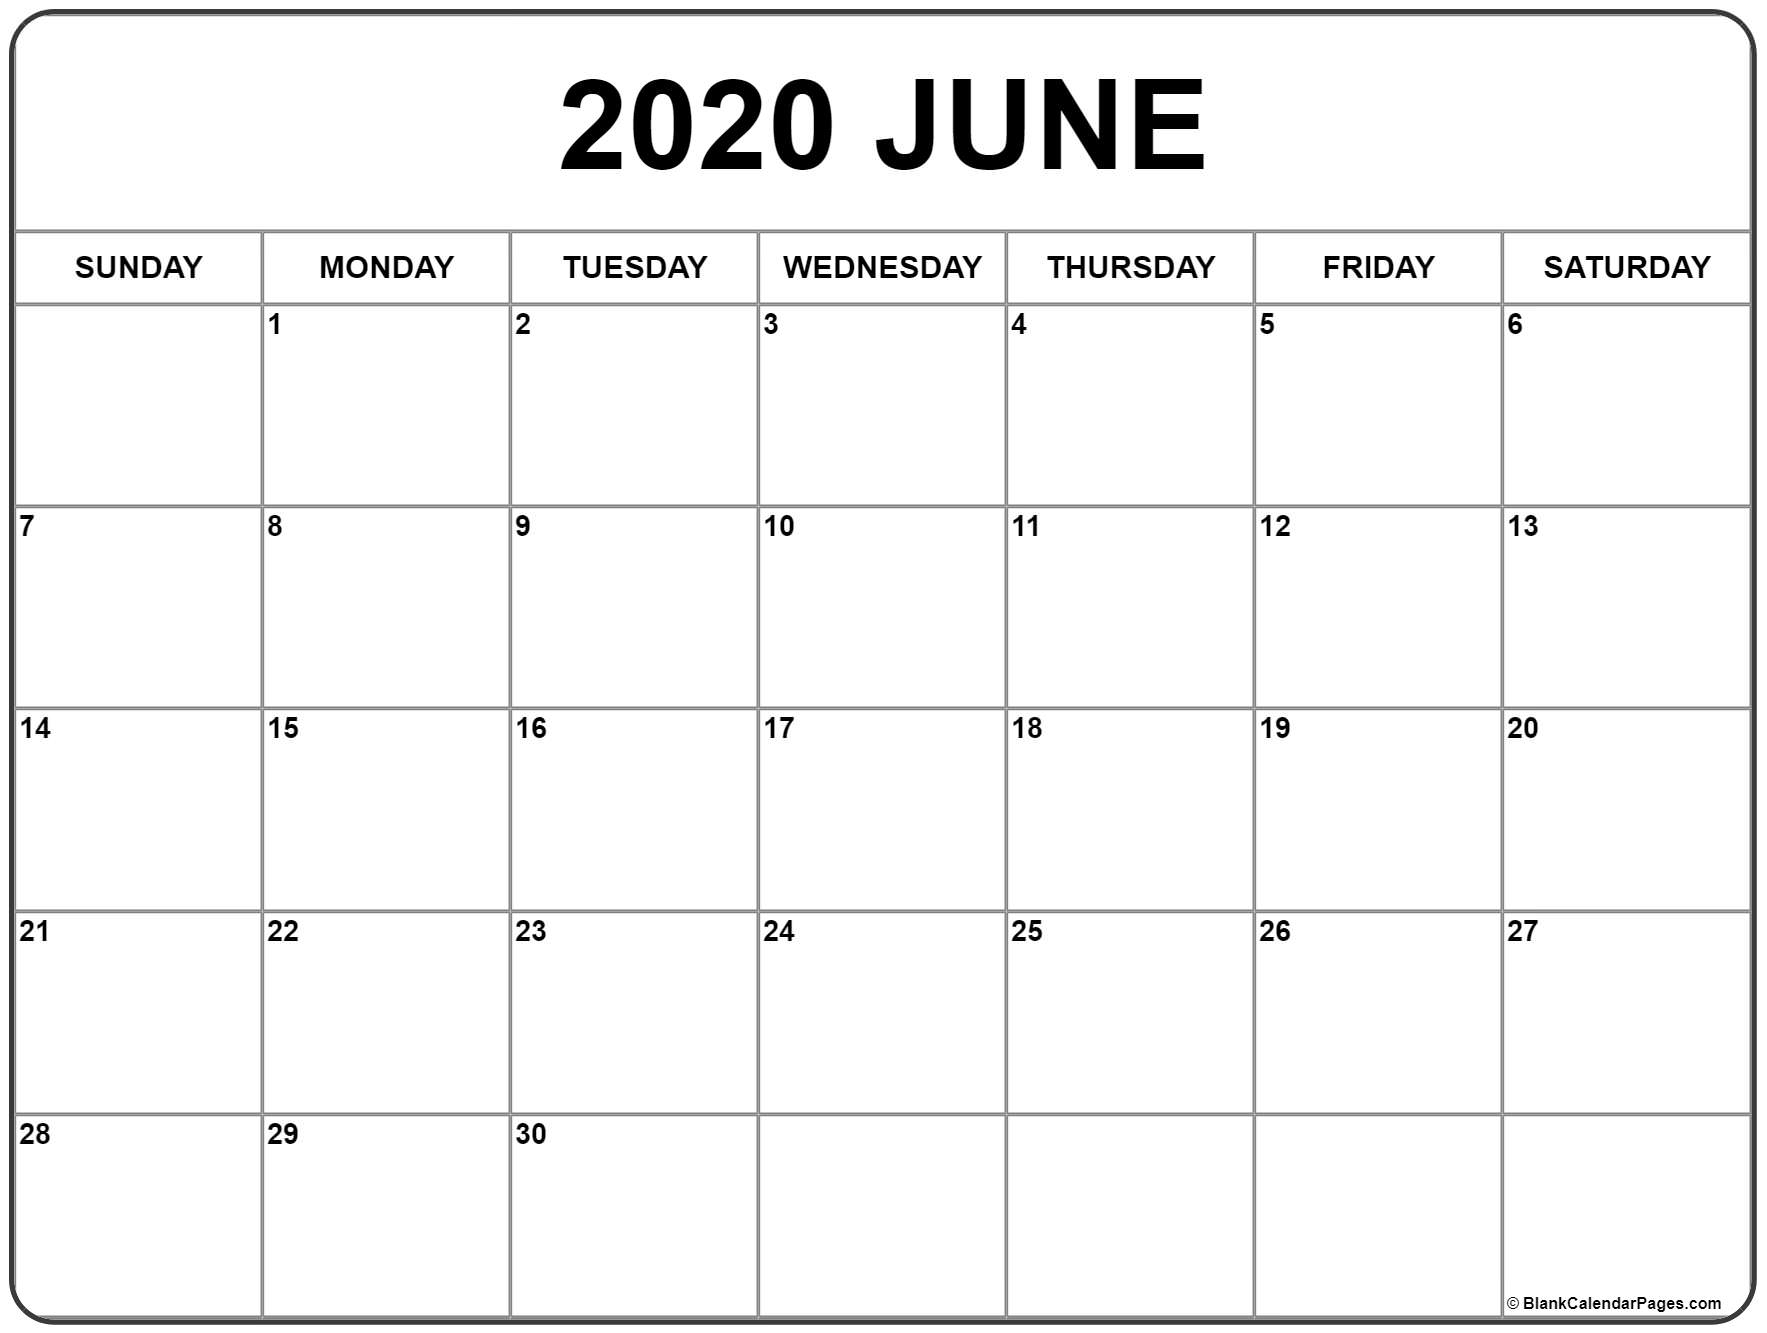 Printable June Calendar 2020 - Togo.wpart.co